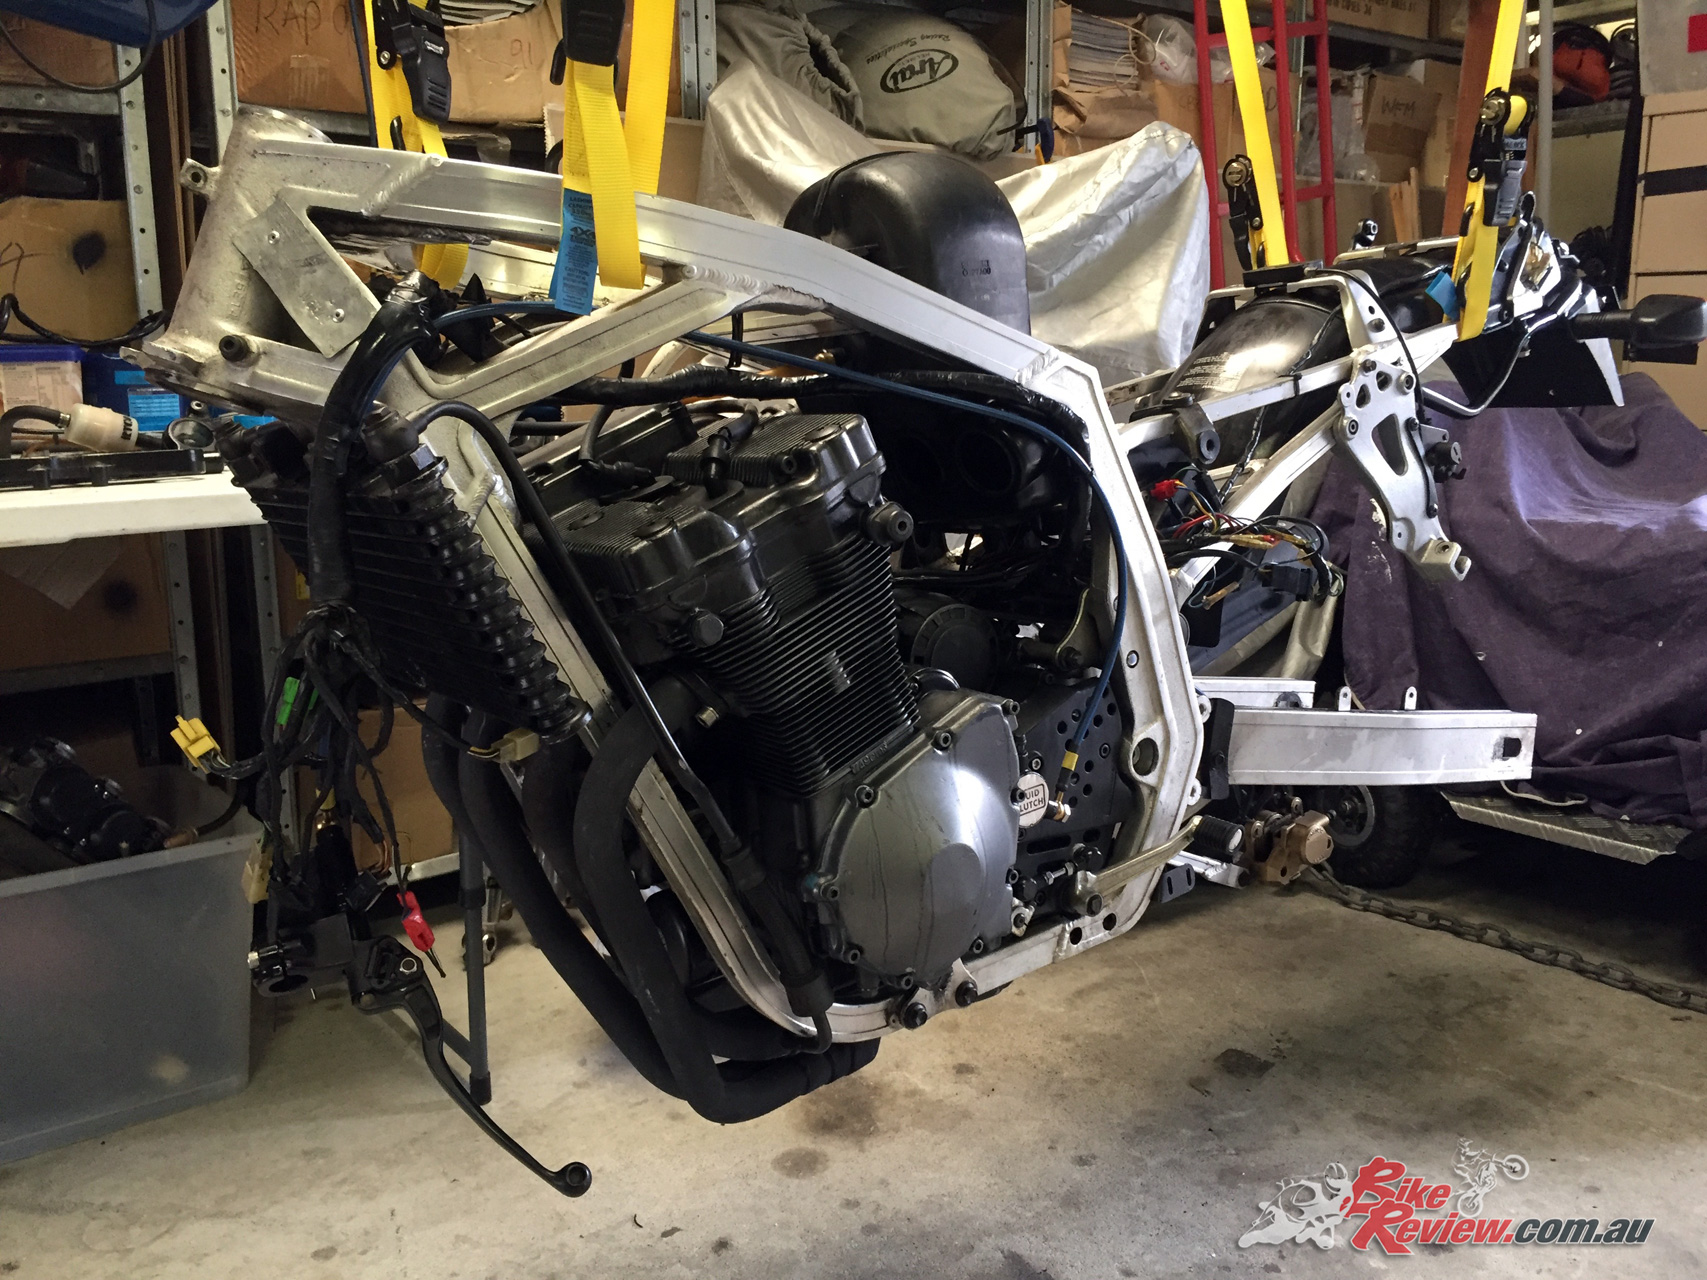 Serious motorcycle work has the side-effect of taking your bike off the road!